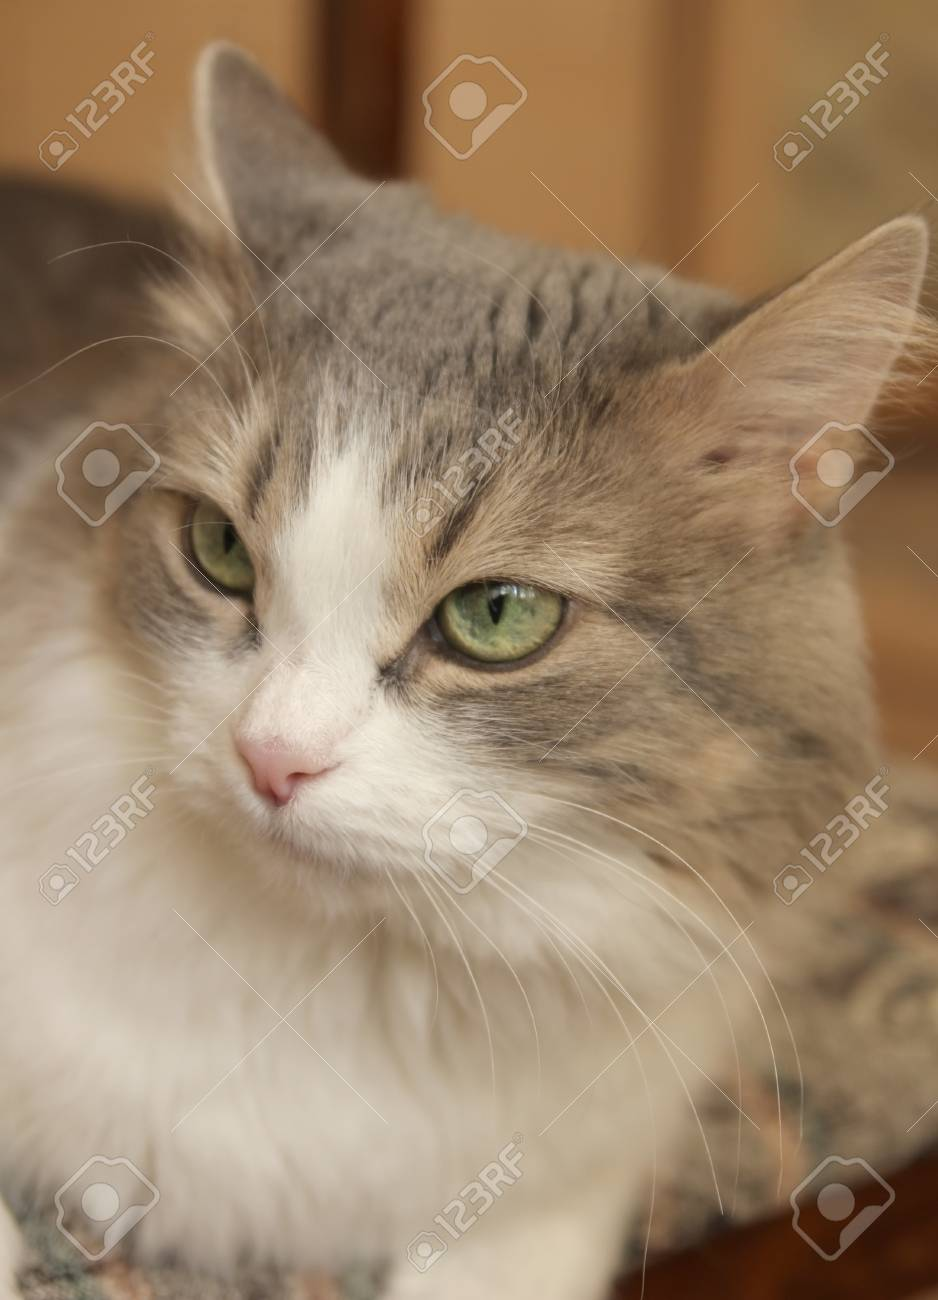 Pretty Cat The Blurred Background Stock Picture And